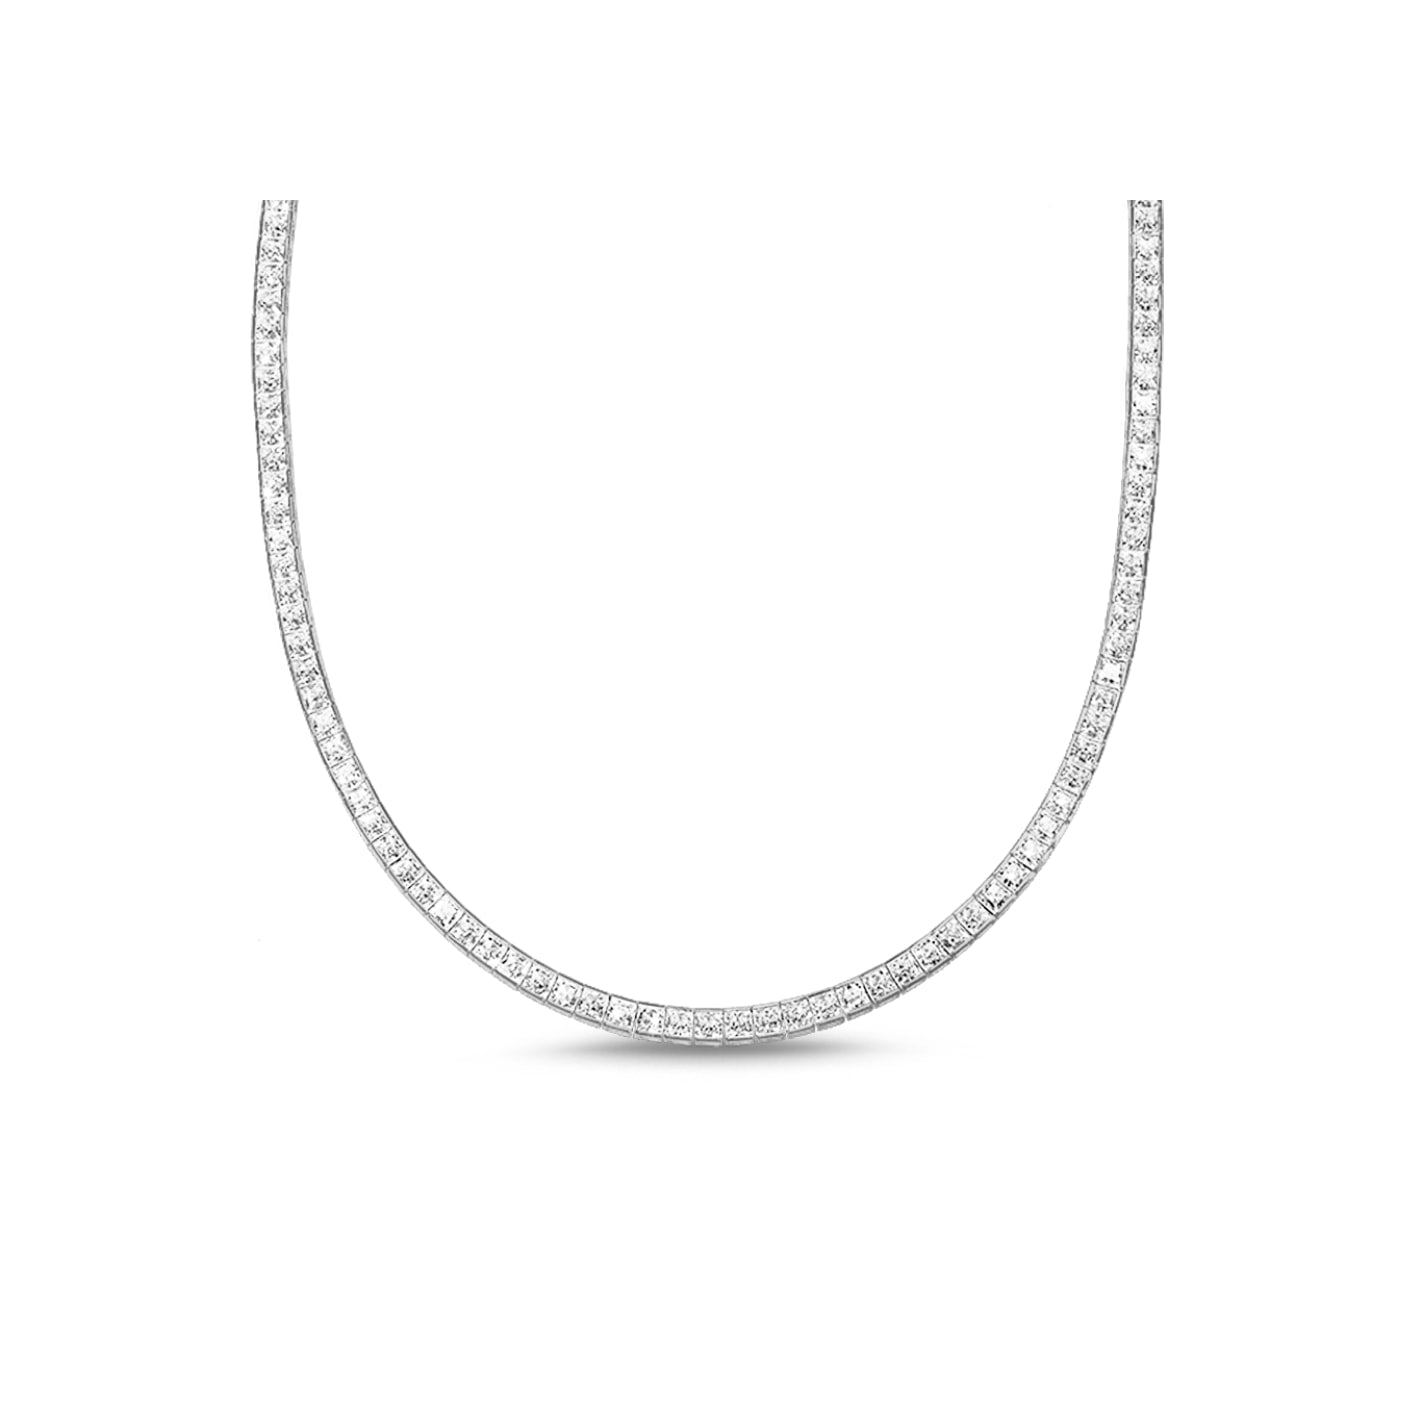 Hariette Princess Diamond Necklace in 18k White Gold Vermeil